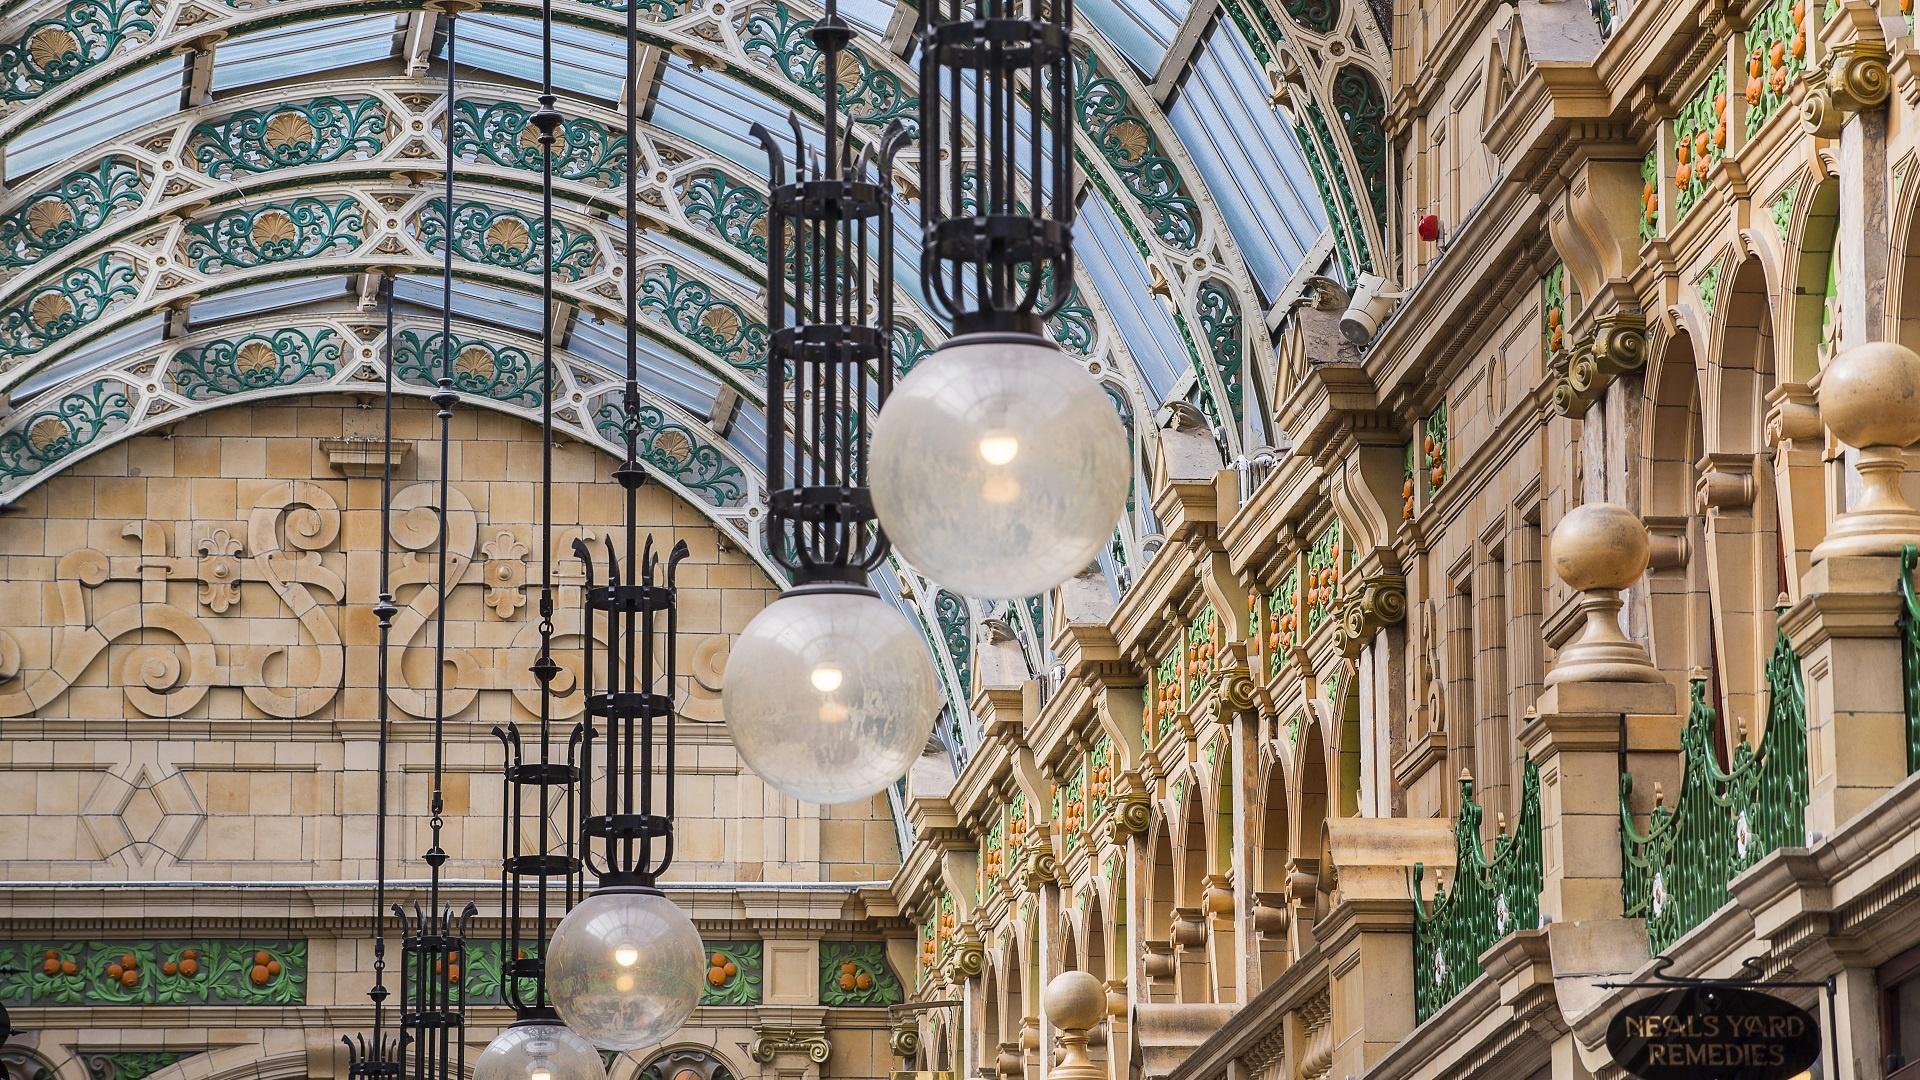 The ornate ceiling of Victoria Quarter, Leeds